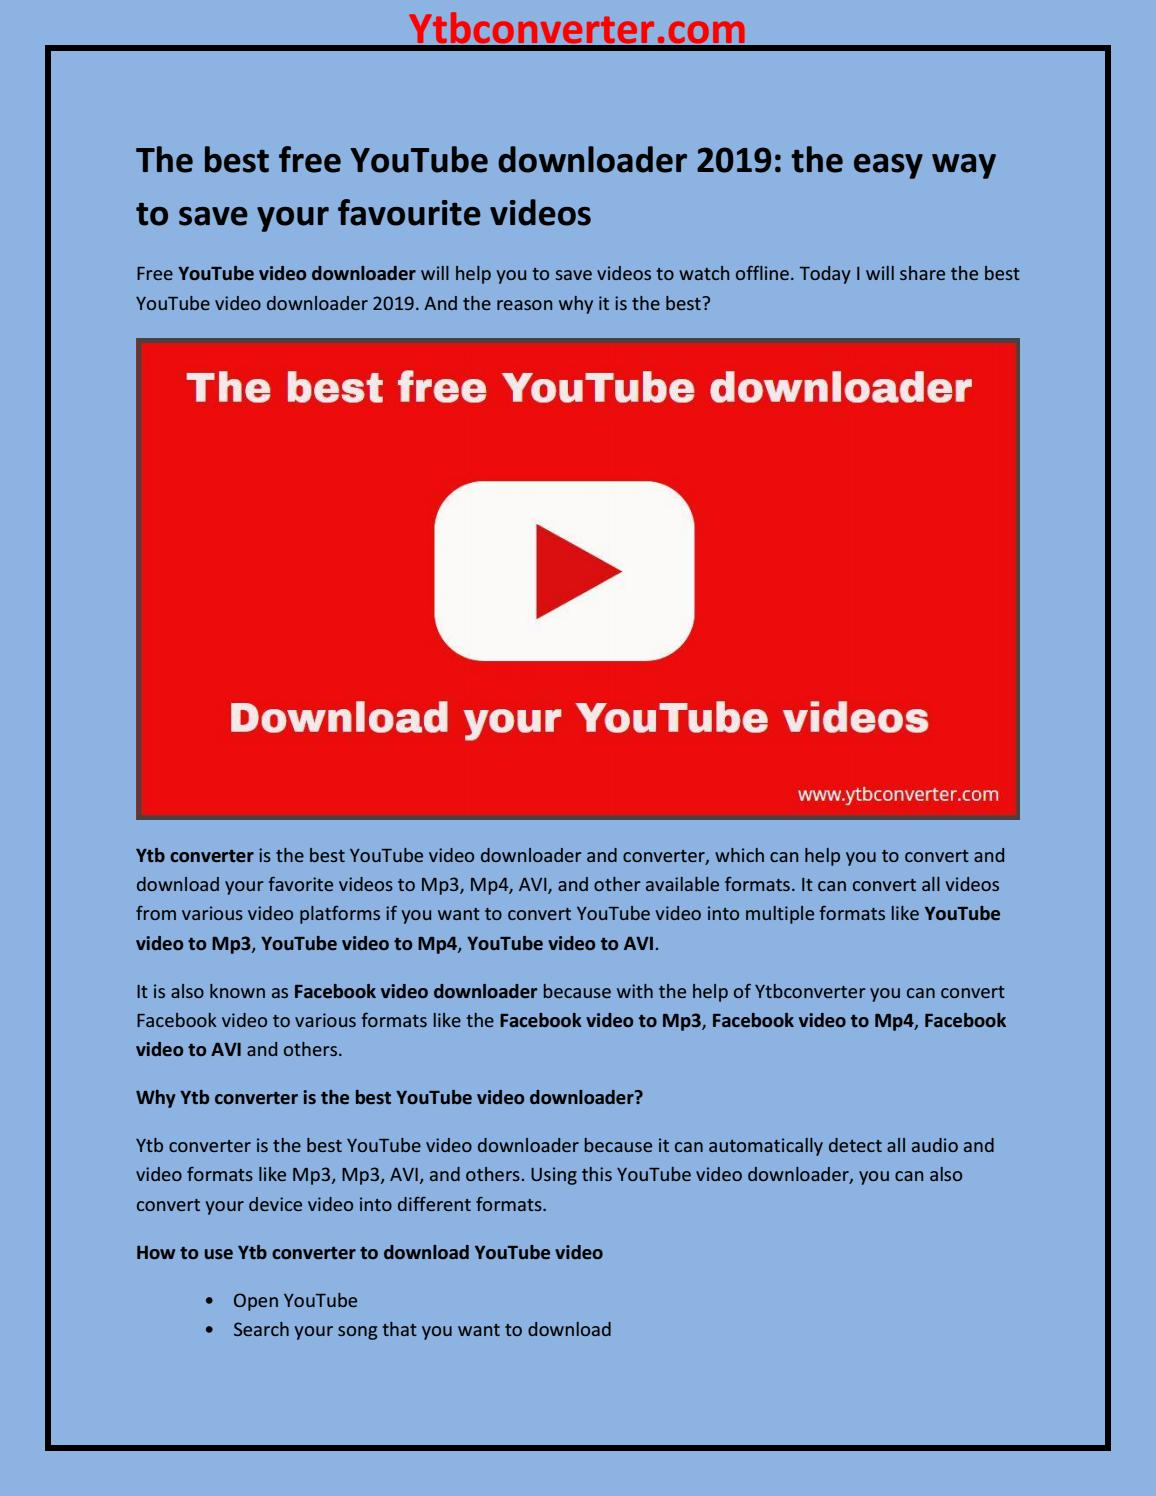 The best free YouTube downloader 2019: the easy way to save